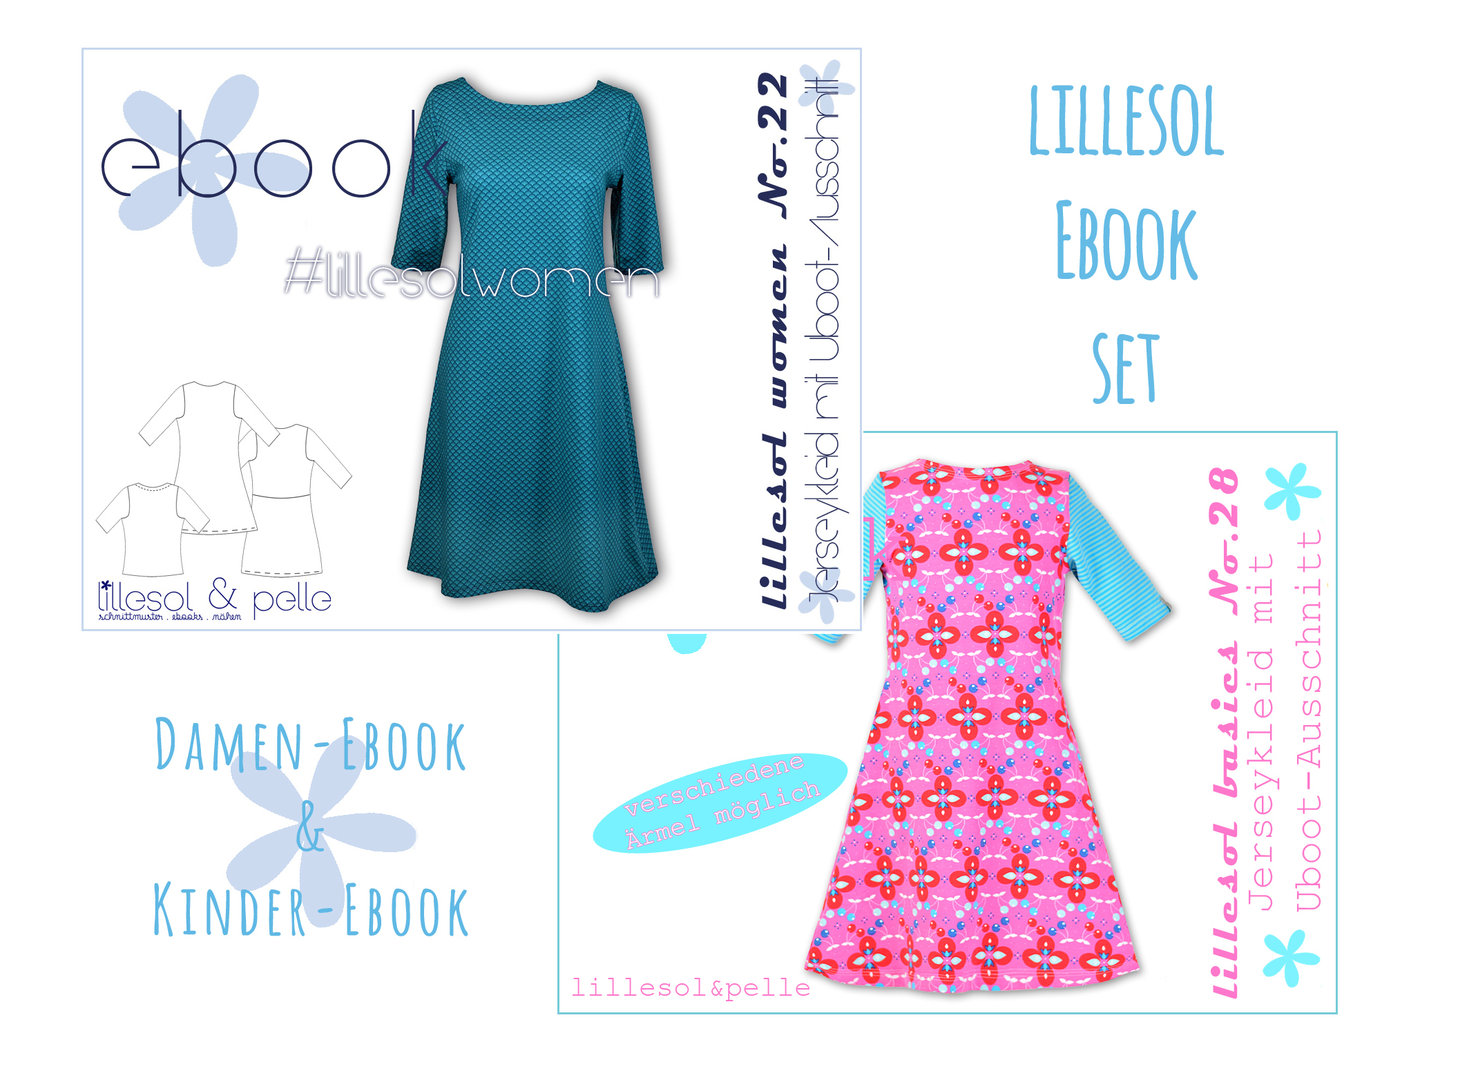 lillesol ebook set basics No.28 und women No.22 *mit Video-Nähanleitung*